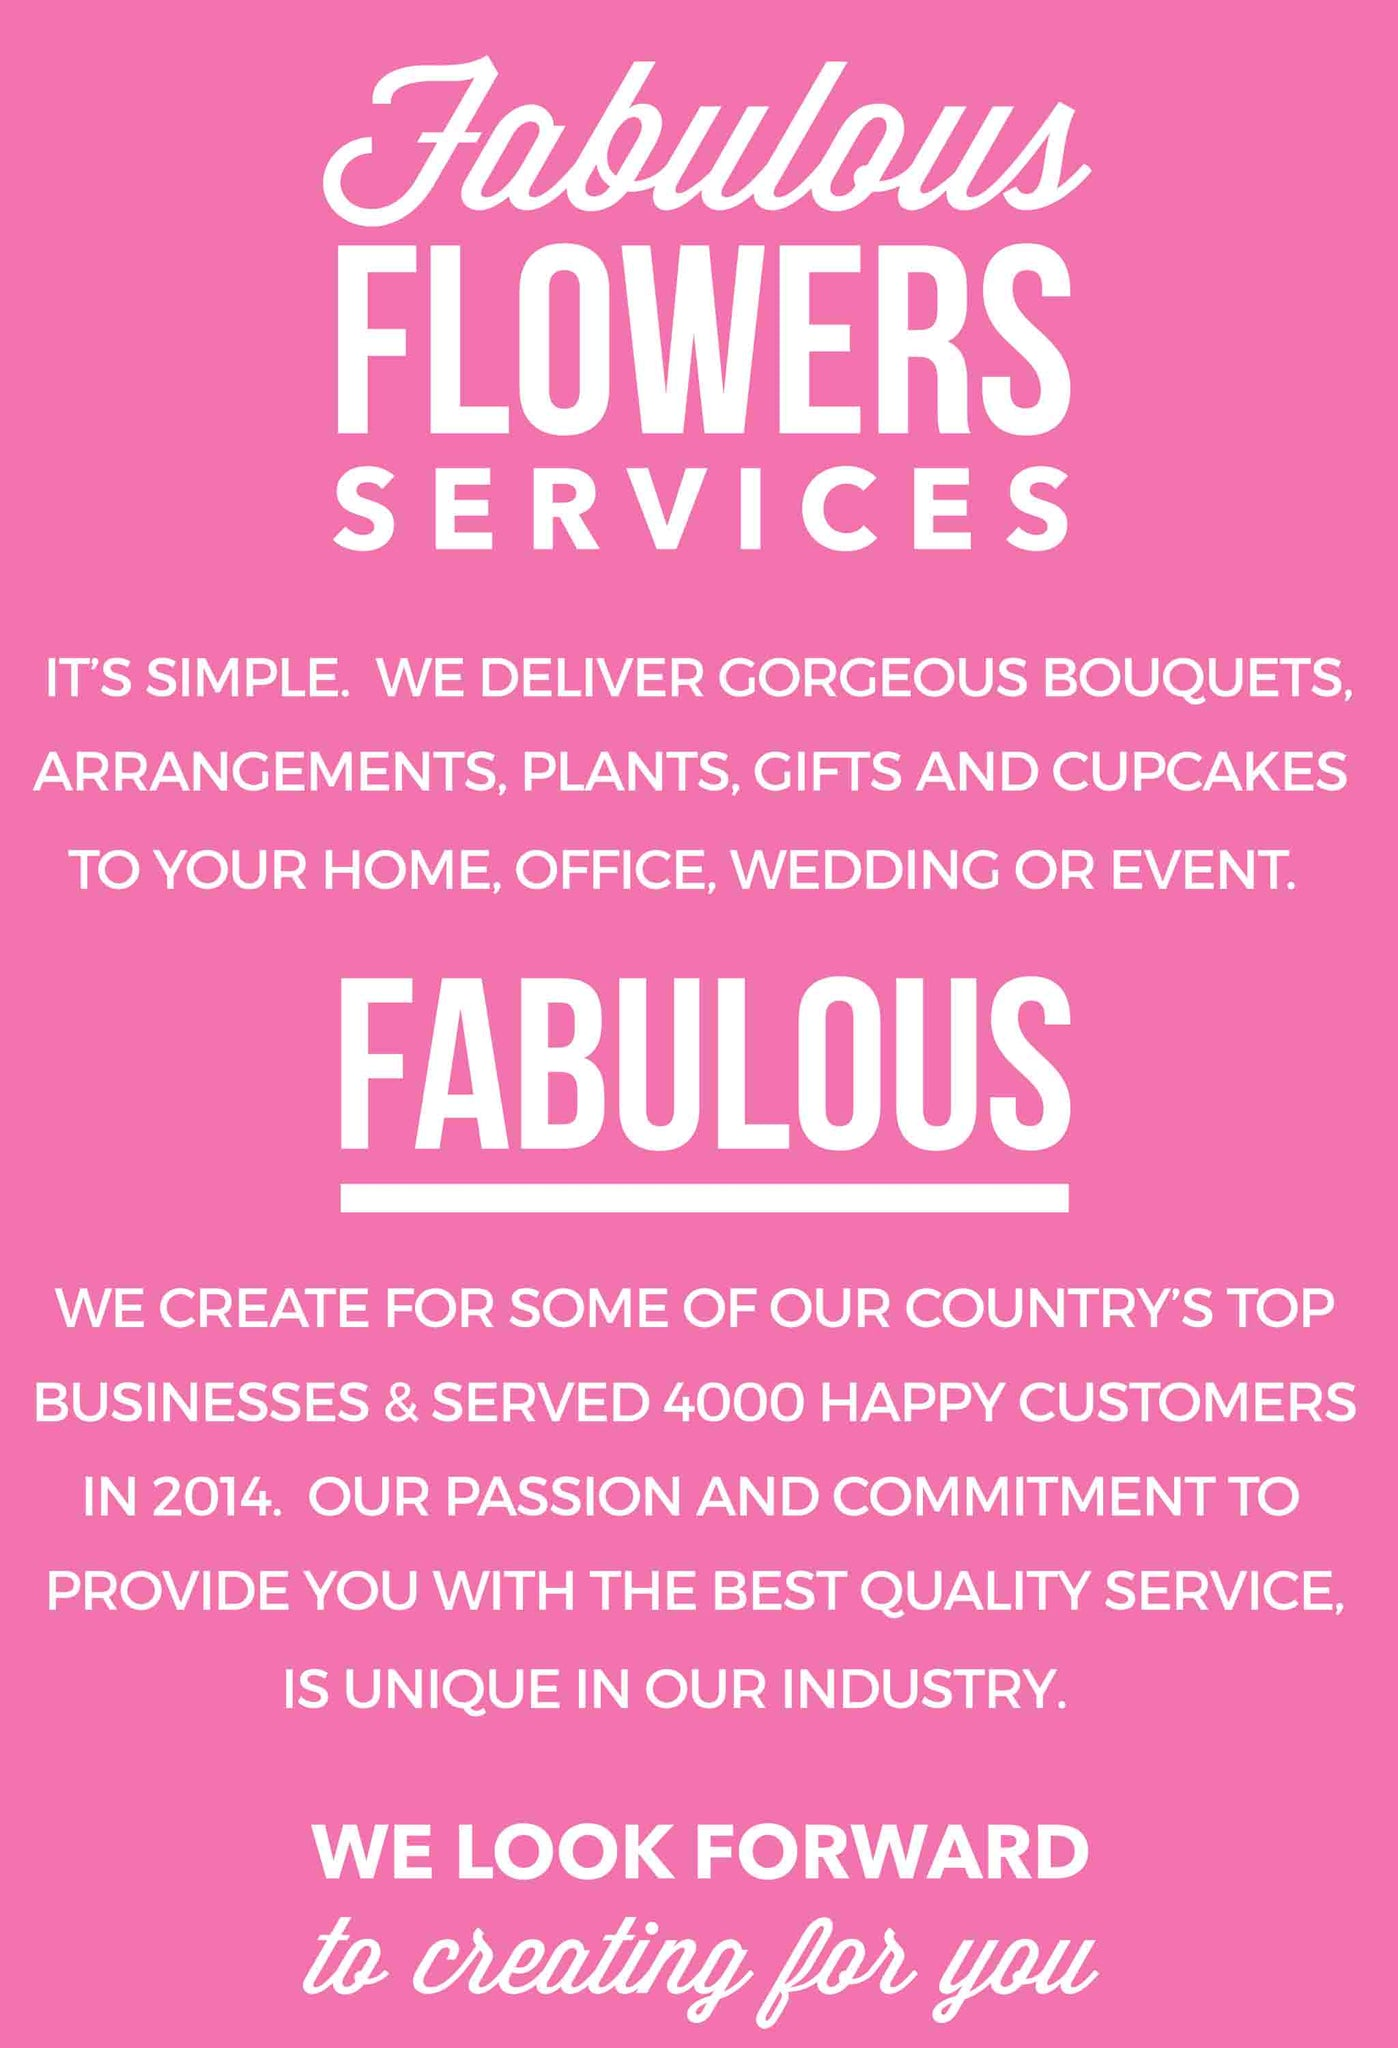 Flowers Online. Internet Florist - Online Florist - Order Flowers Online. Fabulous Flowers - flowers delivered Cape Town. Online florist, flowers online, order flowers online, flower arrangements online, bouquets online, gifts online. fabulous flowers cavendish florist claremont cape town flower school the flowershop wedding flowers florist nearby beautiful wedding arches flower arrangements cape town flower bouquets near me flowers kenilworth florist the flower shop florest delivery flower delivery near me claremont flower delivery wedding arch florist bouquets florist hout bay flower store fabulous flowers cape town wedding bouquets cape town florist kenilworth flowers cape town wedding flowers cape town florist cape town cbd flower cape town florist in claremont cape town florist southern suburbs flowers kenilworth flowers claremont nearest florist cape town flower wedding florist cape town flower deliveries cape town cape town flowers flower shops cape town florists claremont send flowers to cape town flowers cape town delivery cape town florists send flowers cape town bridal bouquets cape town online florist cape town orchid mist flowers shop near me flowers on flowers flowers near me square flowers pretty arch cape town flower delivery flower delivery cape town florist near me flower shop in cape town www.fabulous florist delivery cape town online florists cape town florists cape town florists in claremont florist cape town flowers in cape town cape town florist flower shop cape town flowers online cape town flower shops in cape town wedding bouquet florist in cape town cbd flower shops florist in cape town fabulousflowers best florist nearest flower shop purple plant pot wedding bouqet nearest florist shop cavendish the cape town florist florist claremont flower delivery service cape town wedding florists cape town florist cape town delivery flowers for wedding florists in cape town flower delivery in cape town floral wedding arch cost flower shop near me